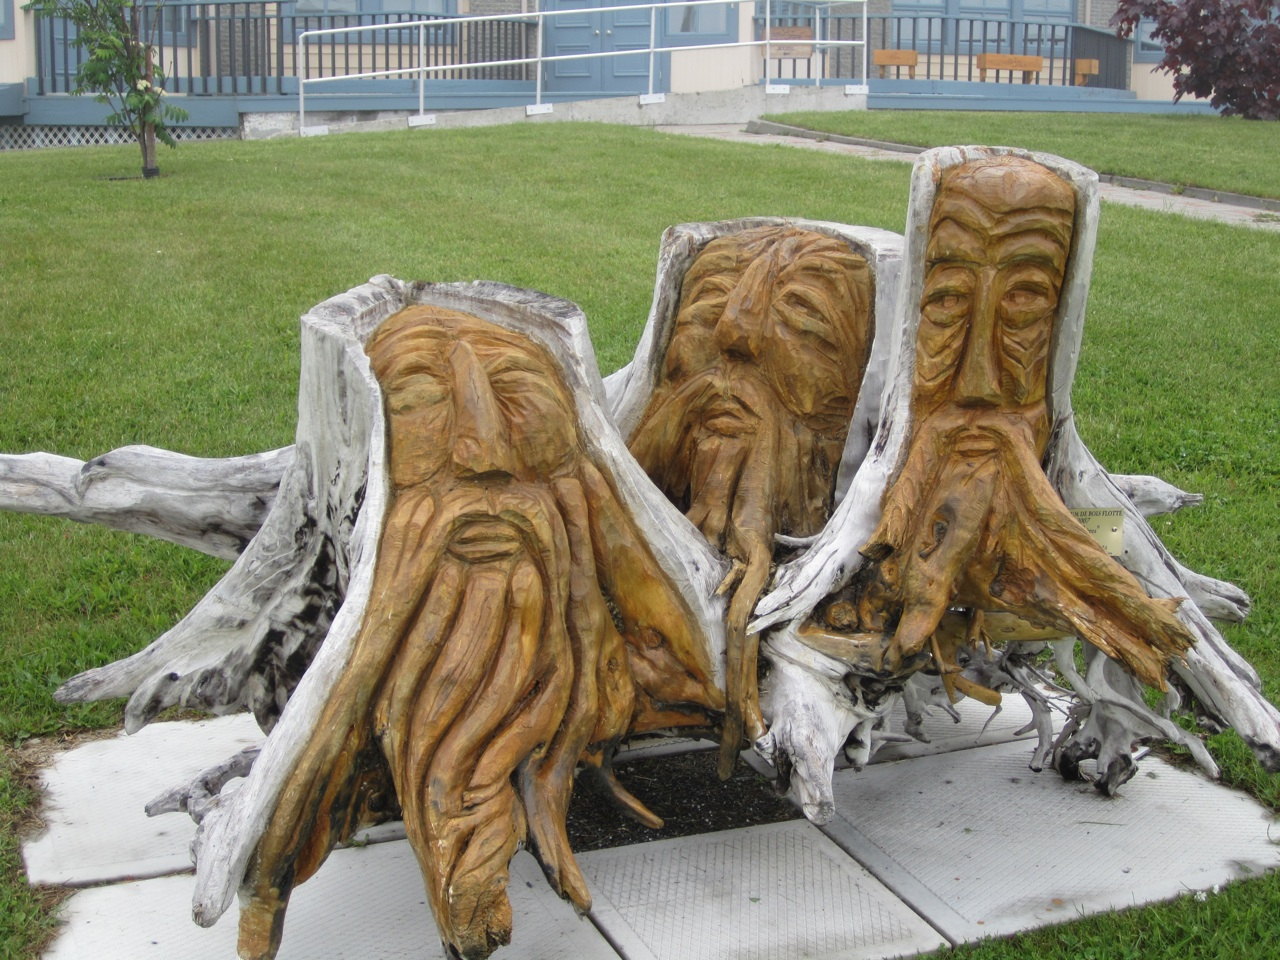 Three Men Driftwood Sculpture In Sainte Anne des Monts.